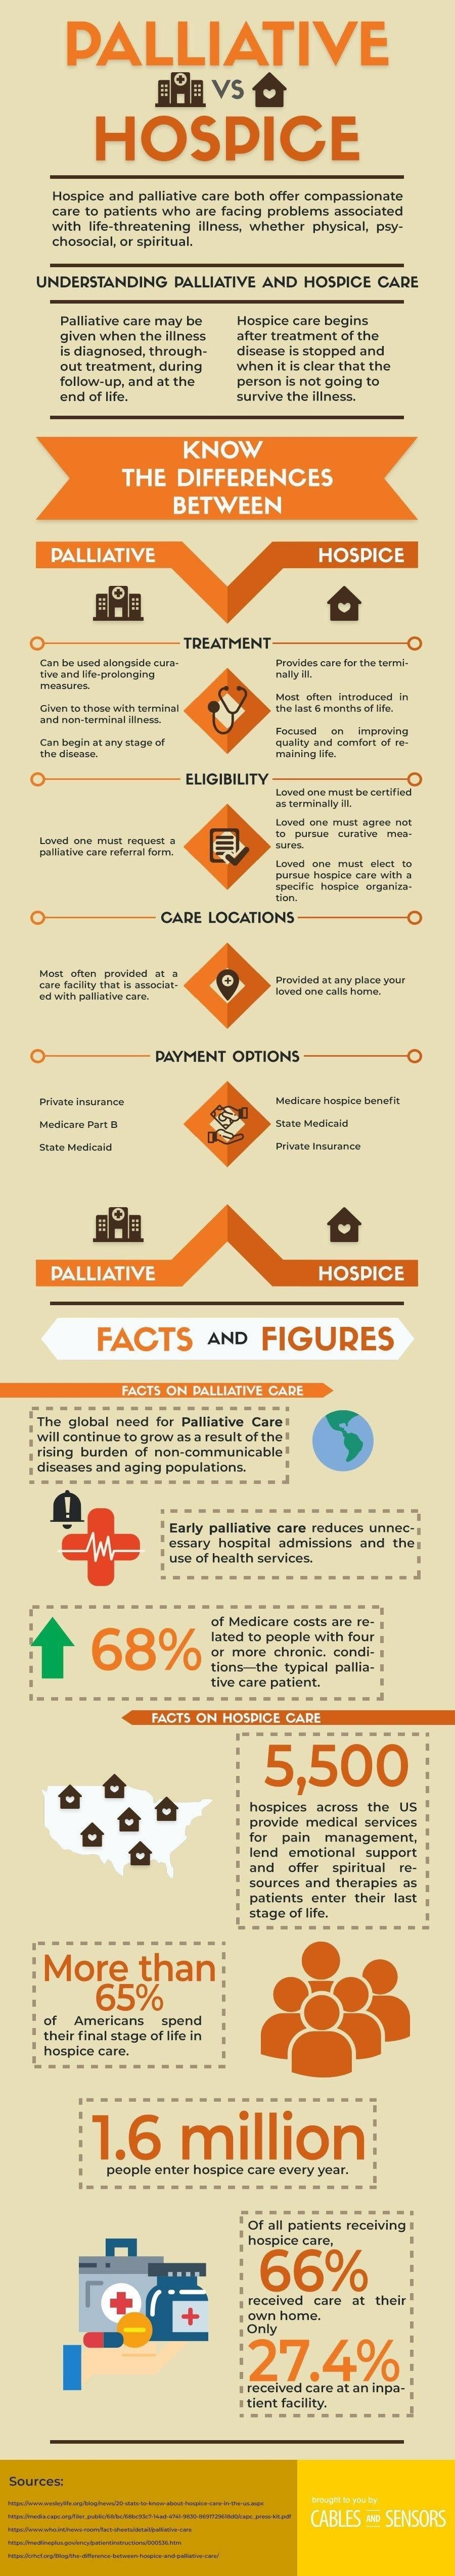 Palliative vs. hospice care: fundamental health care aspects #infographic